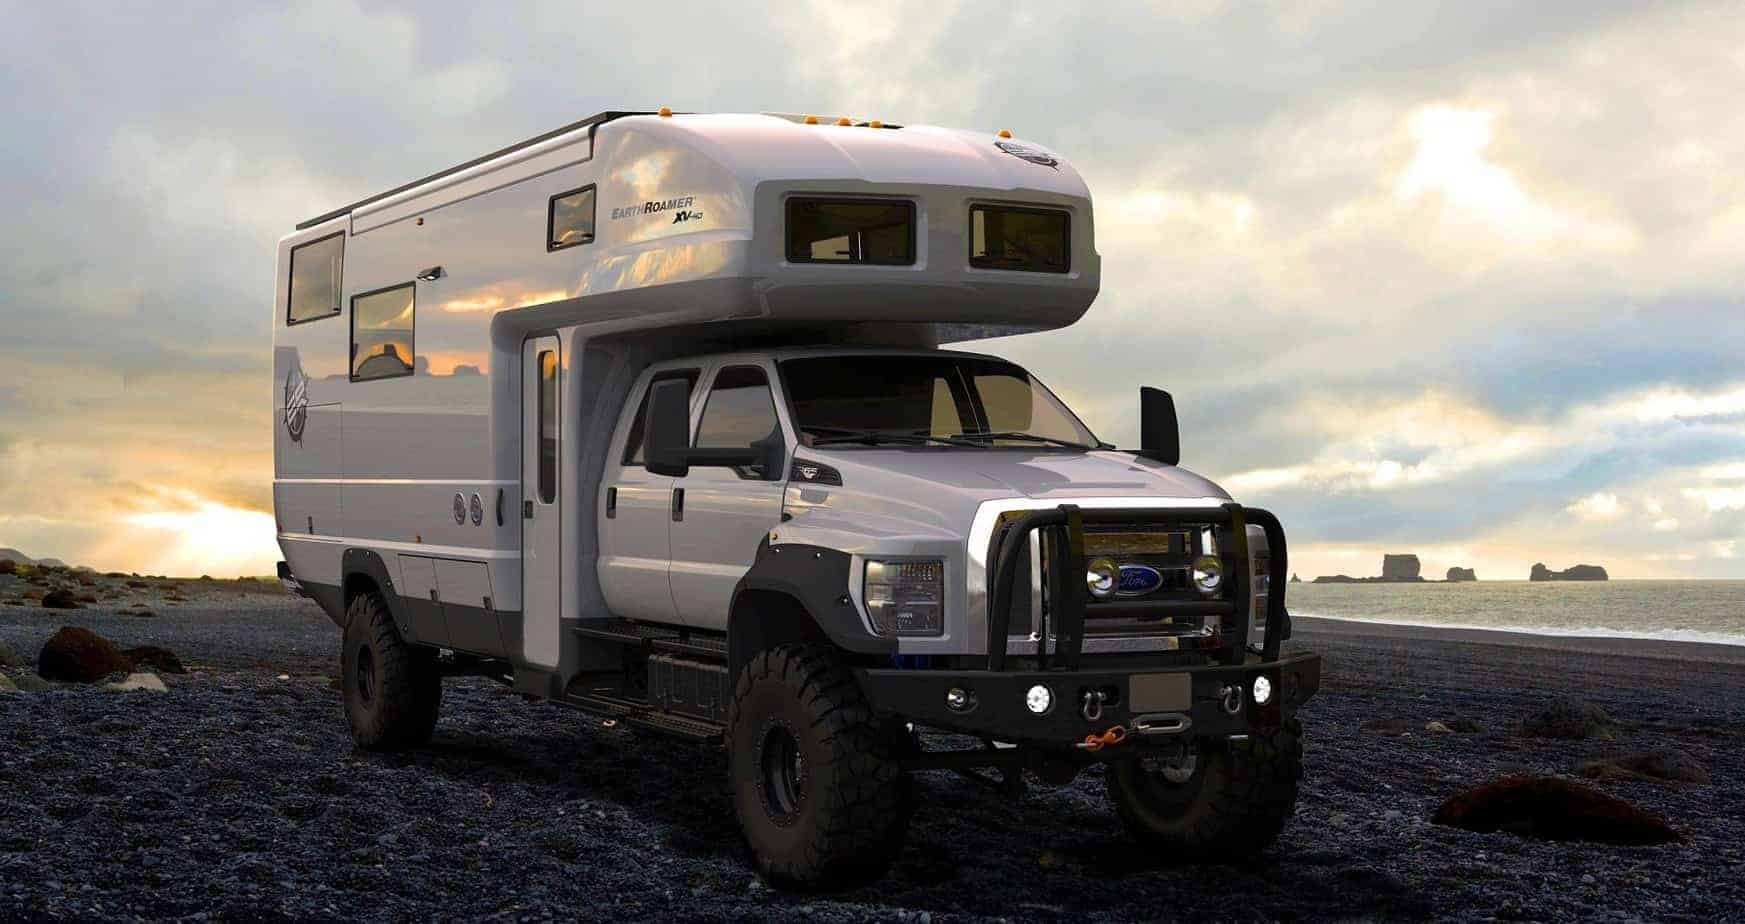 The Cost of Van and Camper Living